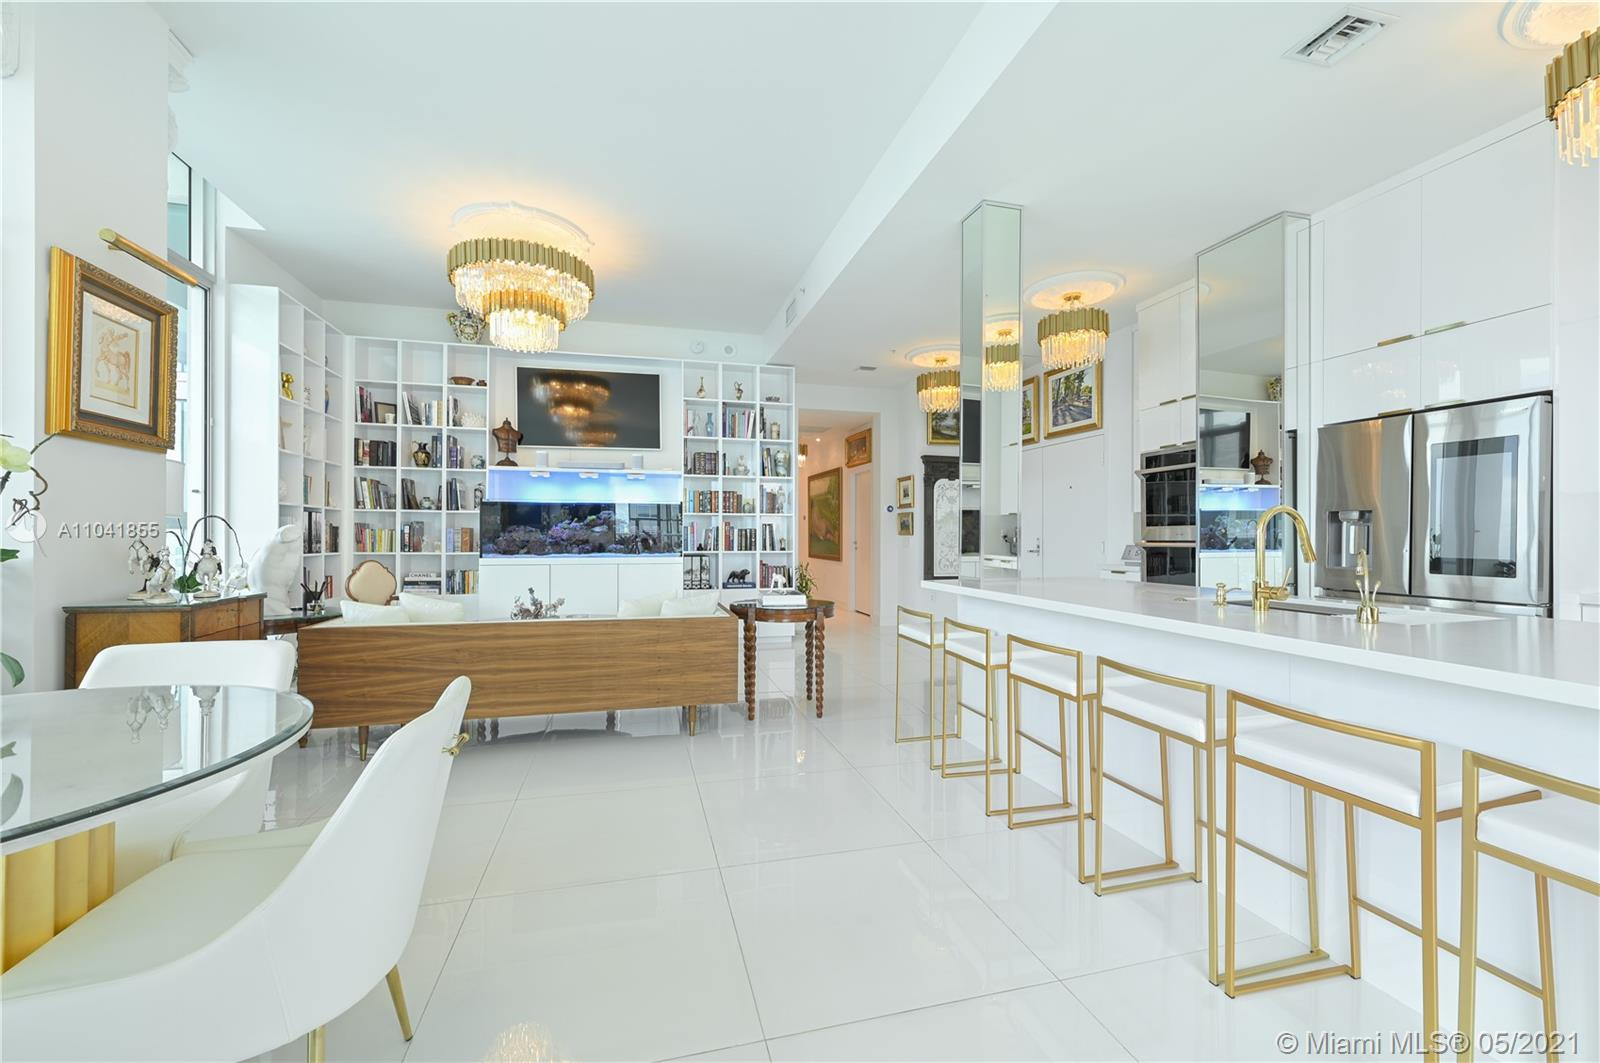 Welcome to 4006 at Met 1, where beauty and luxury meet comfort and leisure. Completely redesigned in palatial white and gold, this Downtown Miami penthouse offers a unique opportunity. Entertain effortlessly in your very own tasting room complete with custom cabinetry boasting a 100+ wine bottle cellar, built-in ice maker, sleek dual tap draft beer refrigerator, and direct access to the wraparound balcony. The stunning kitchen has been expanded and finished with high-end appliances. As you walk through the art-filled hallway, you'll encounter the impeccably designed bedrooms, each with custom walk-in closets, spa-like bathrooms, and a second balcony to enjoy privately. And lastly, this is a very rare opportunity to own five (5) designated parking spaces in the heart of Downtown Miami.